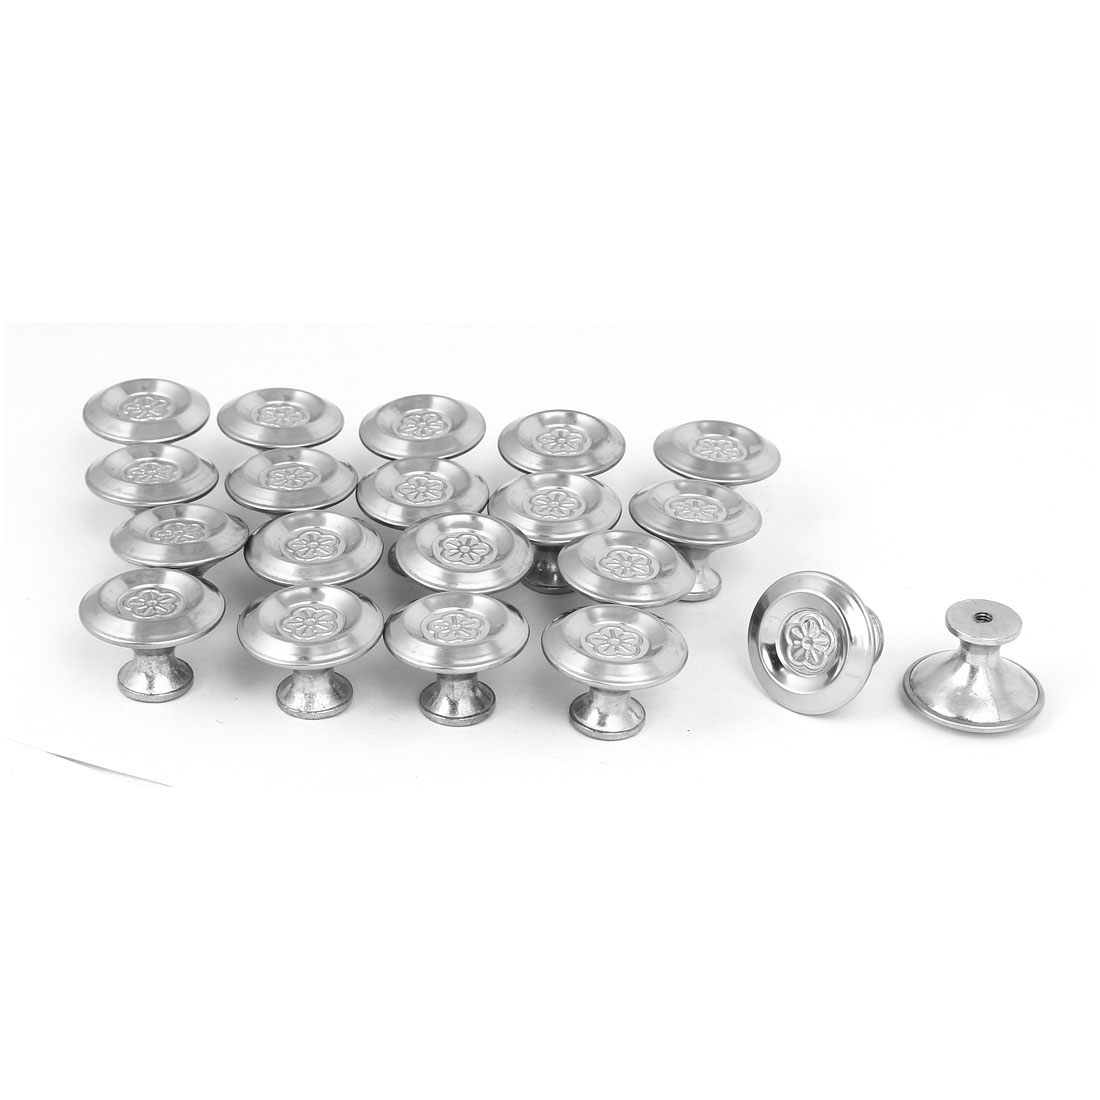 Cabinet Drawer Single Hole Flower Printed Pull Knobs Silver Tone 30mmx22mm 20pcs